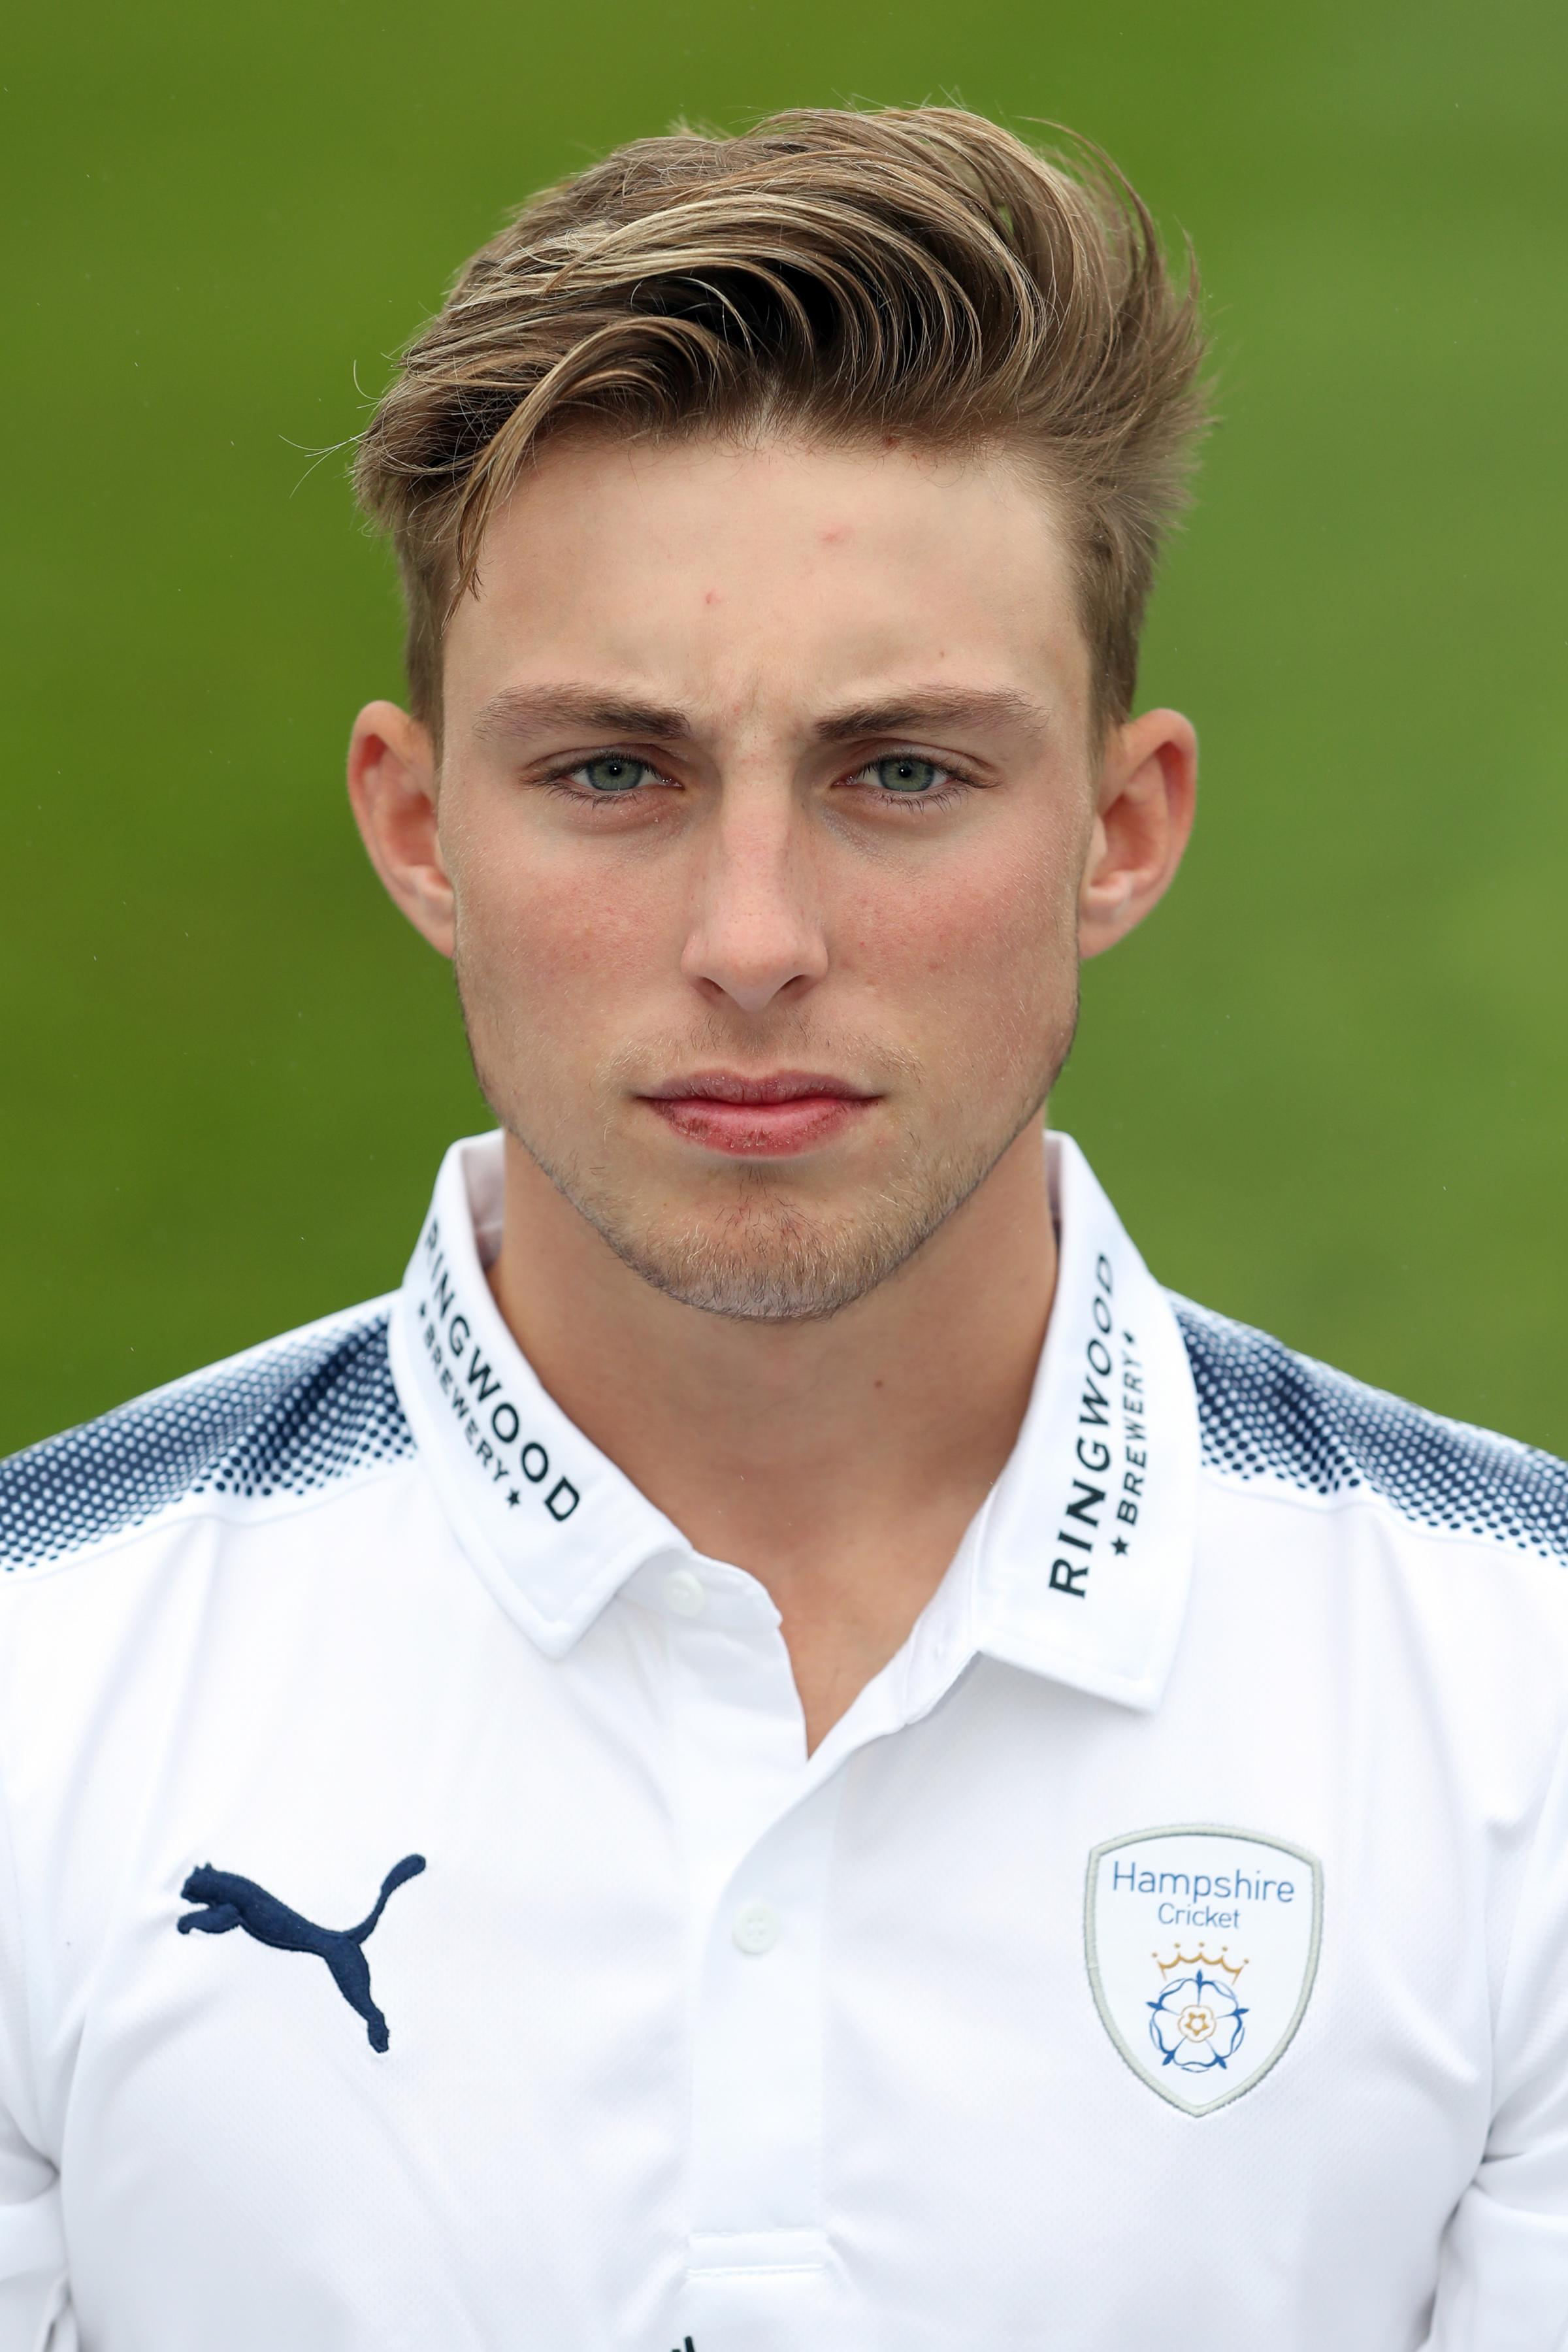 Return: Asher Hart is back at Penrith Cricket Club after he was released by Hampshire in October